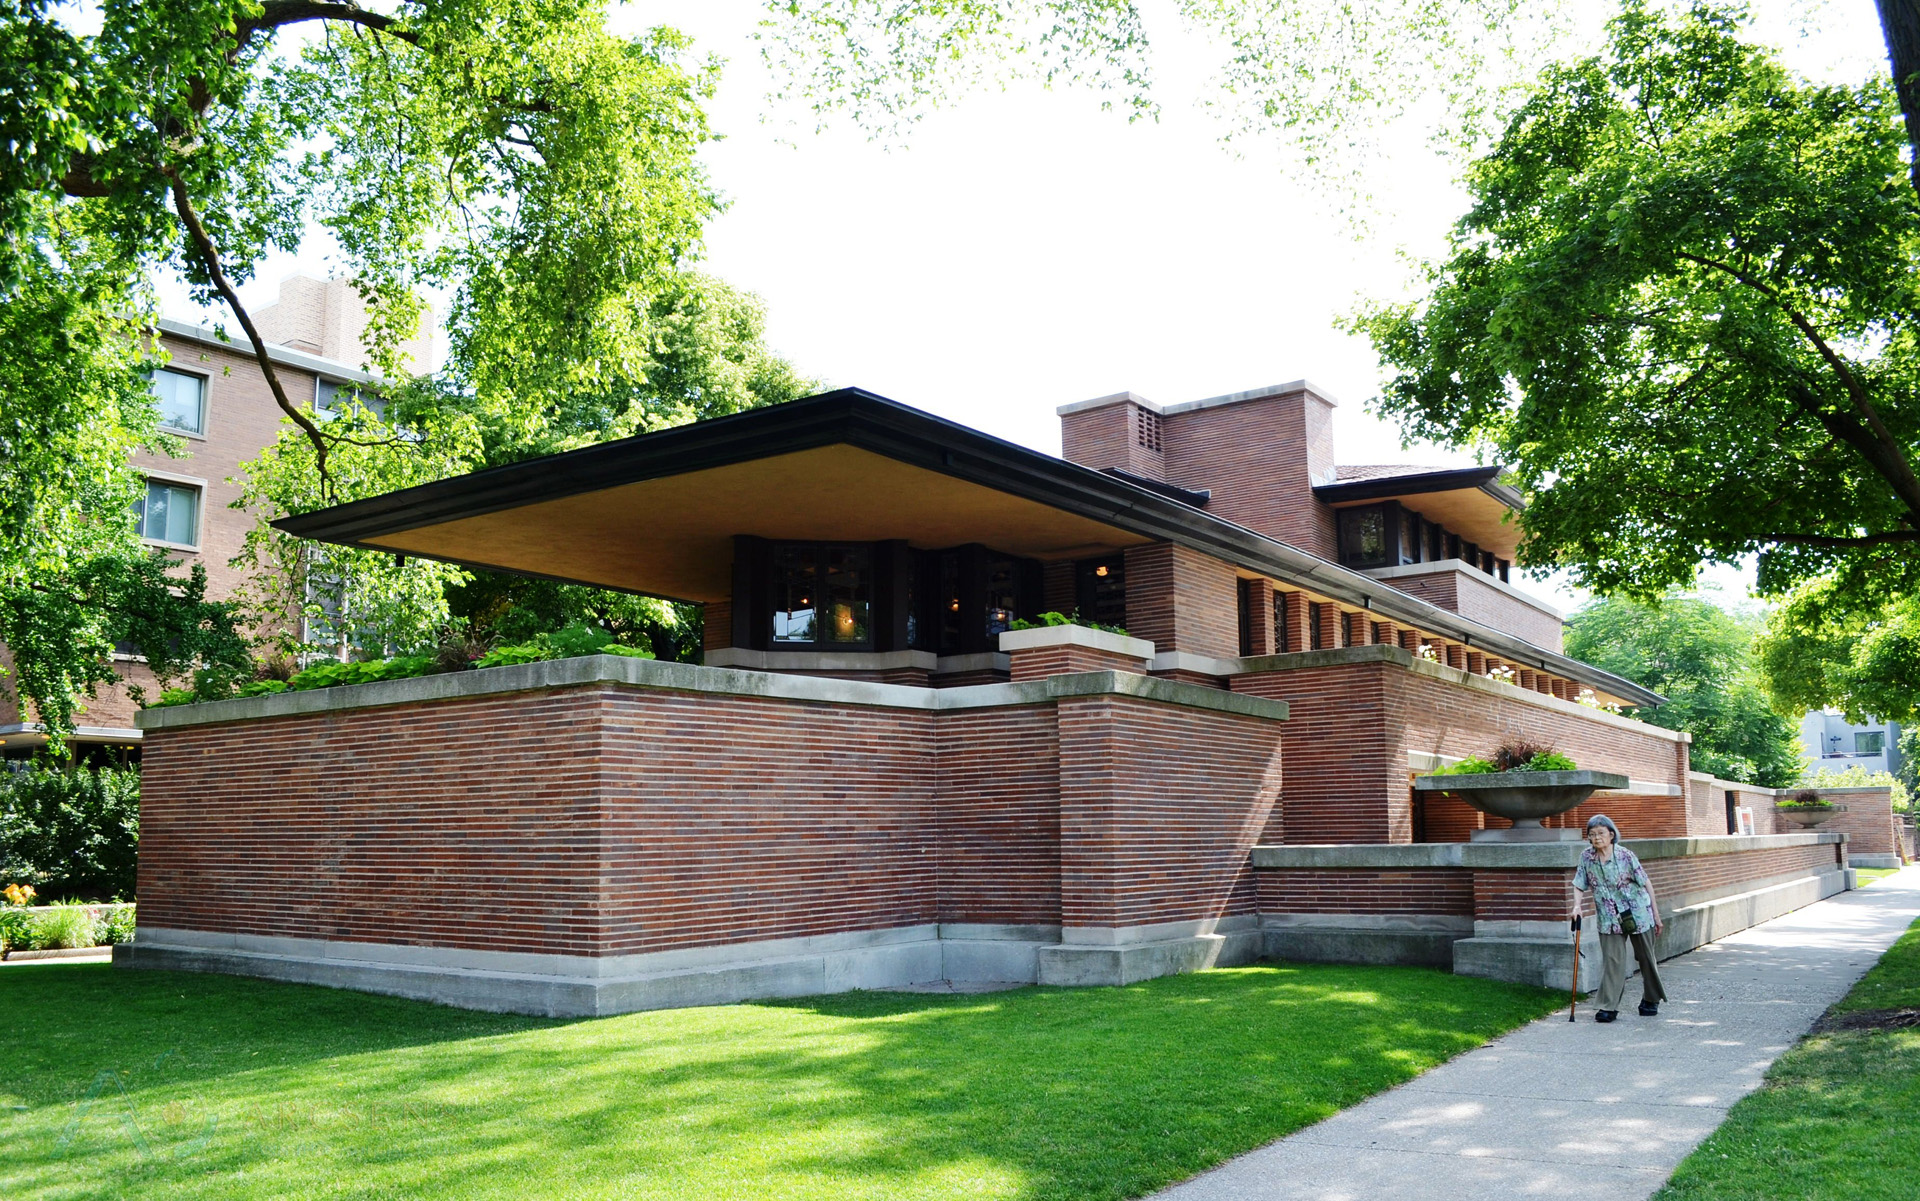 7 weaknesses in Works of architects famed AMERICA – FRANK LLOYD WRIGHT